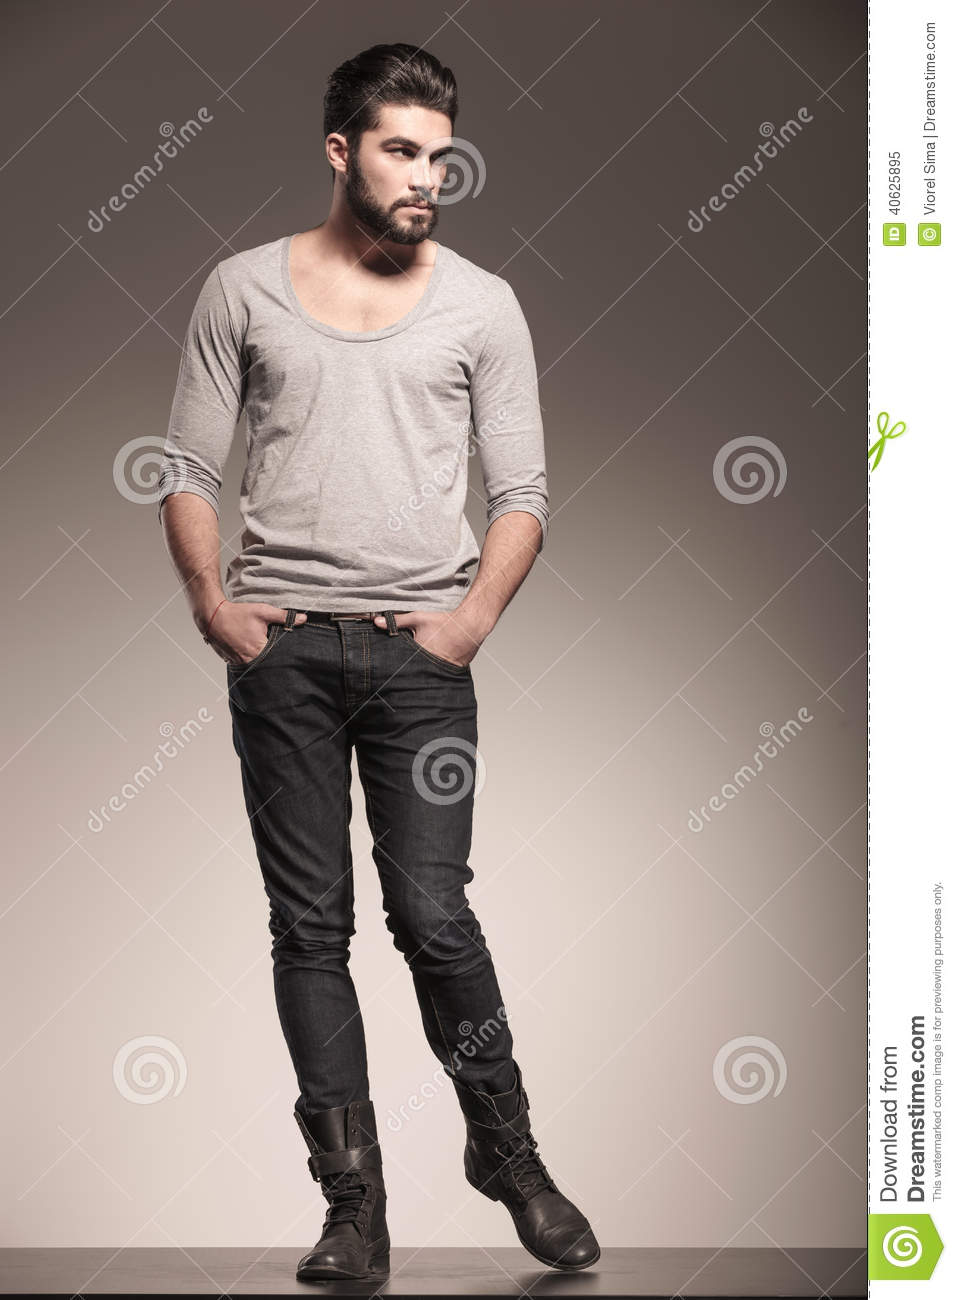 Male Model With Beard In A Fashion Pose Stock Photo